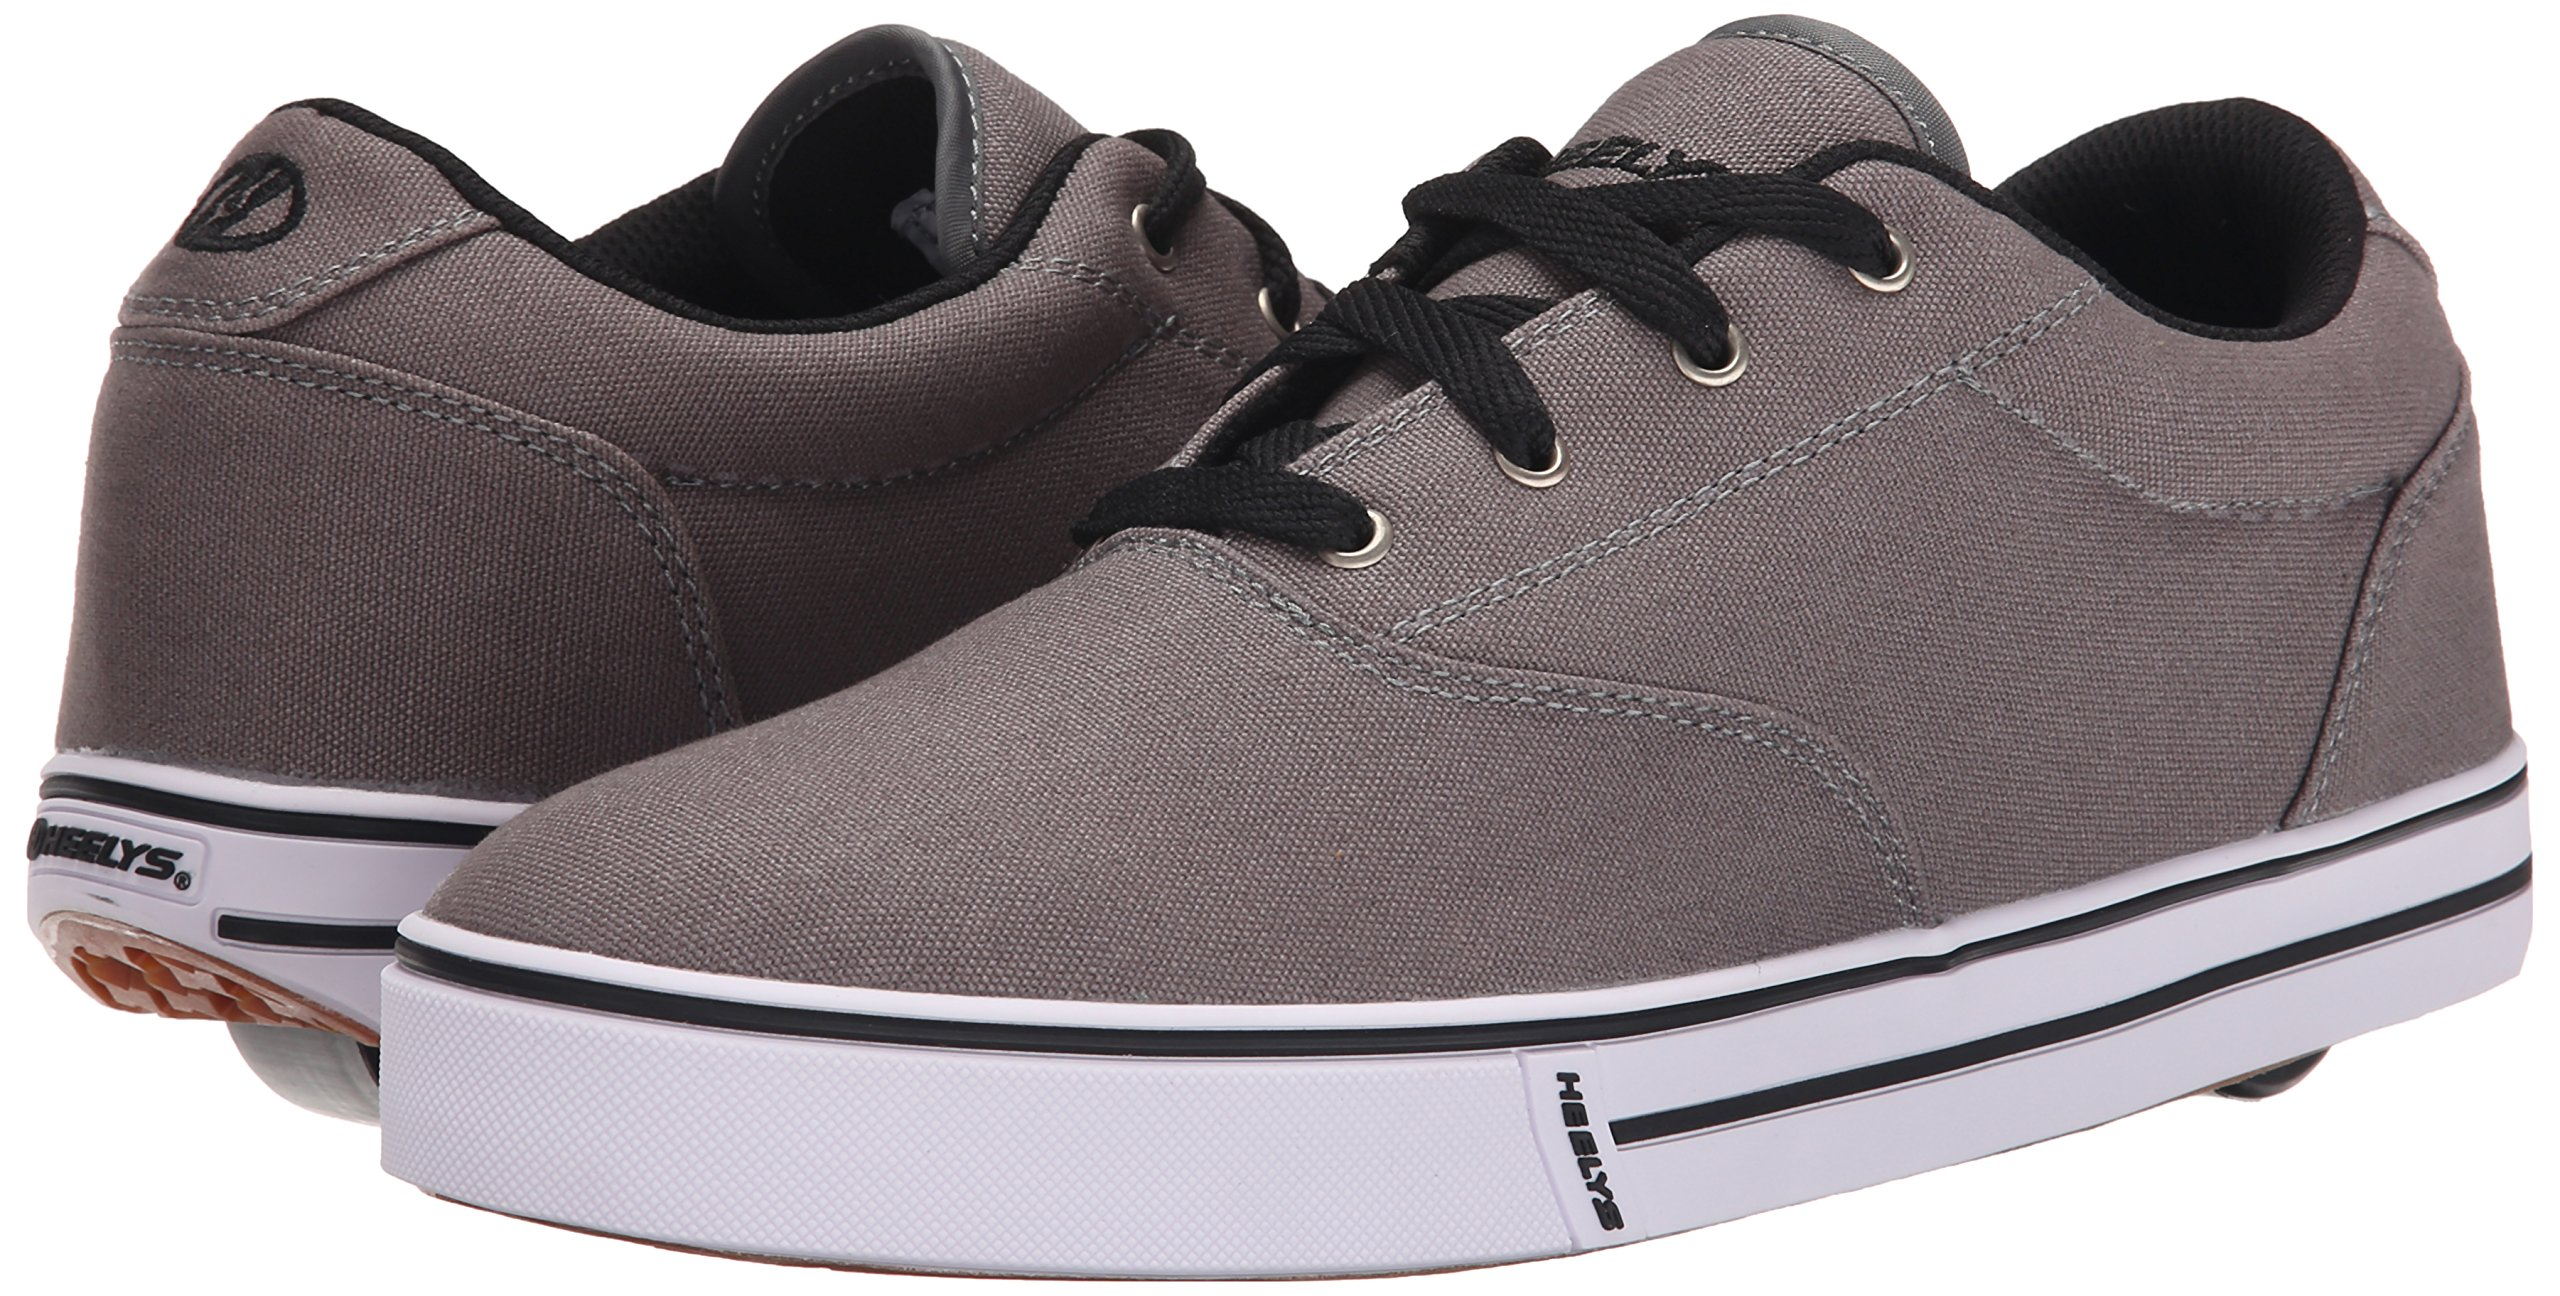 Heelys Men's Launch Fashion Sneaker Grey 10 M US by Heelys (Image #6)